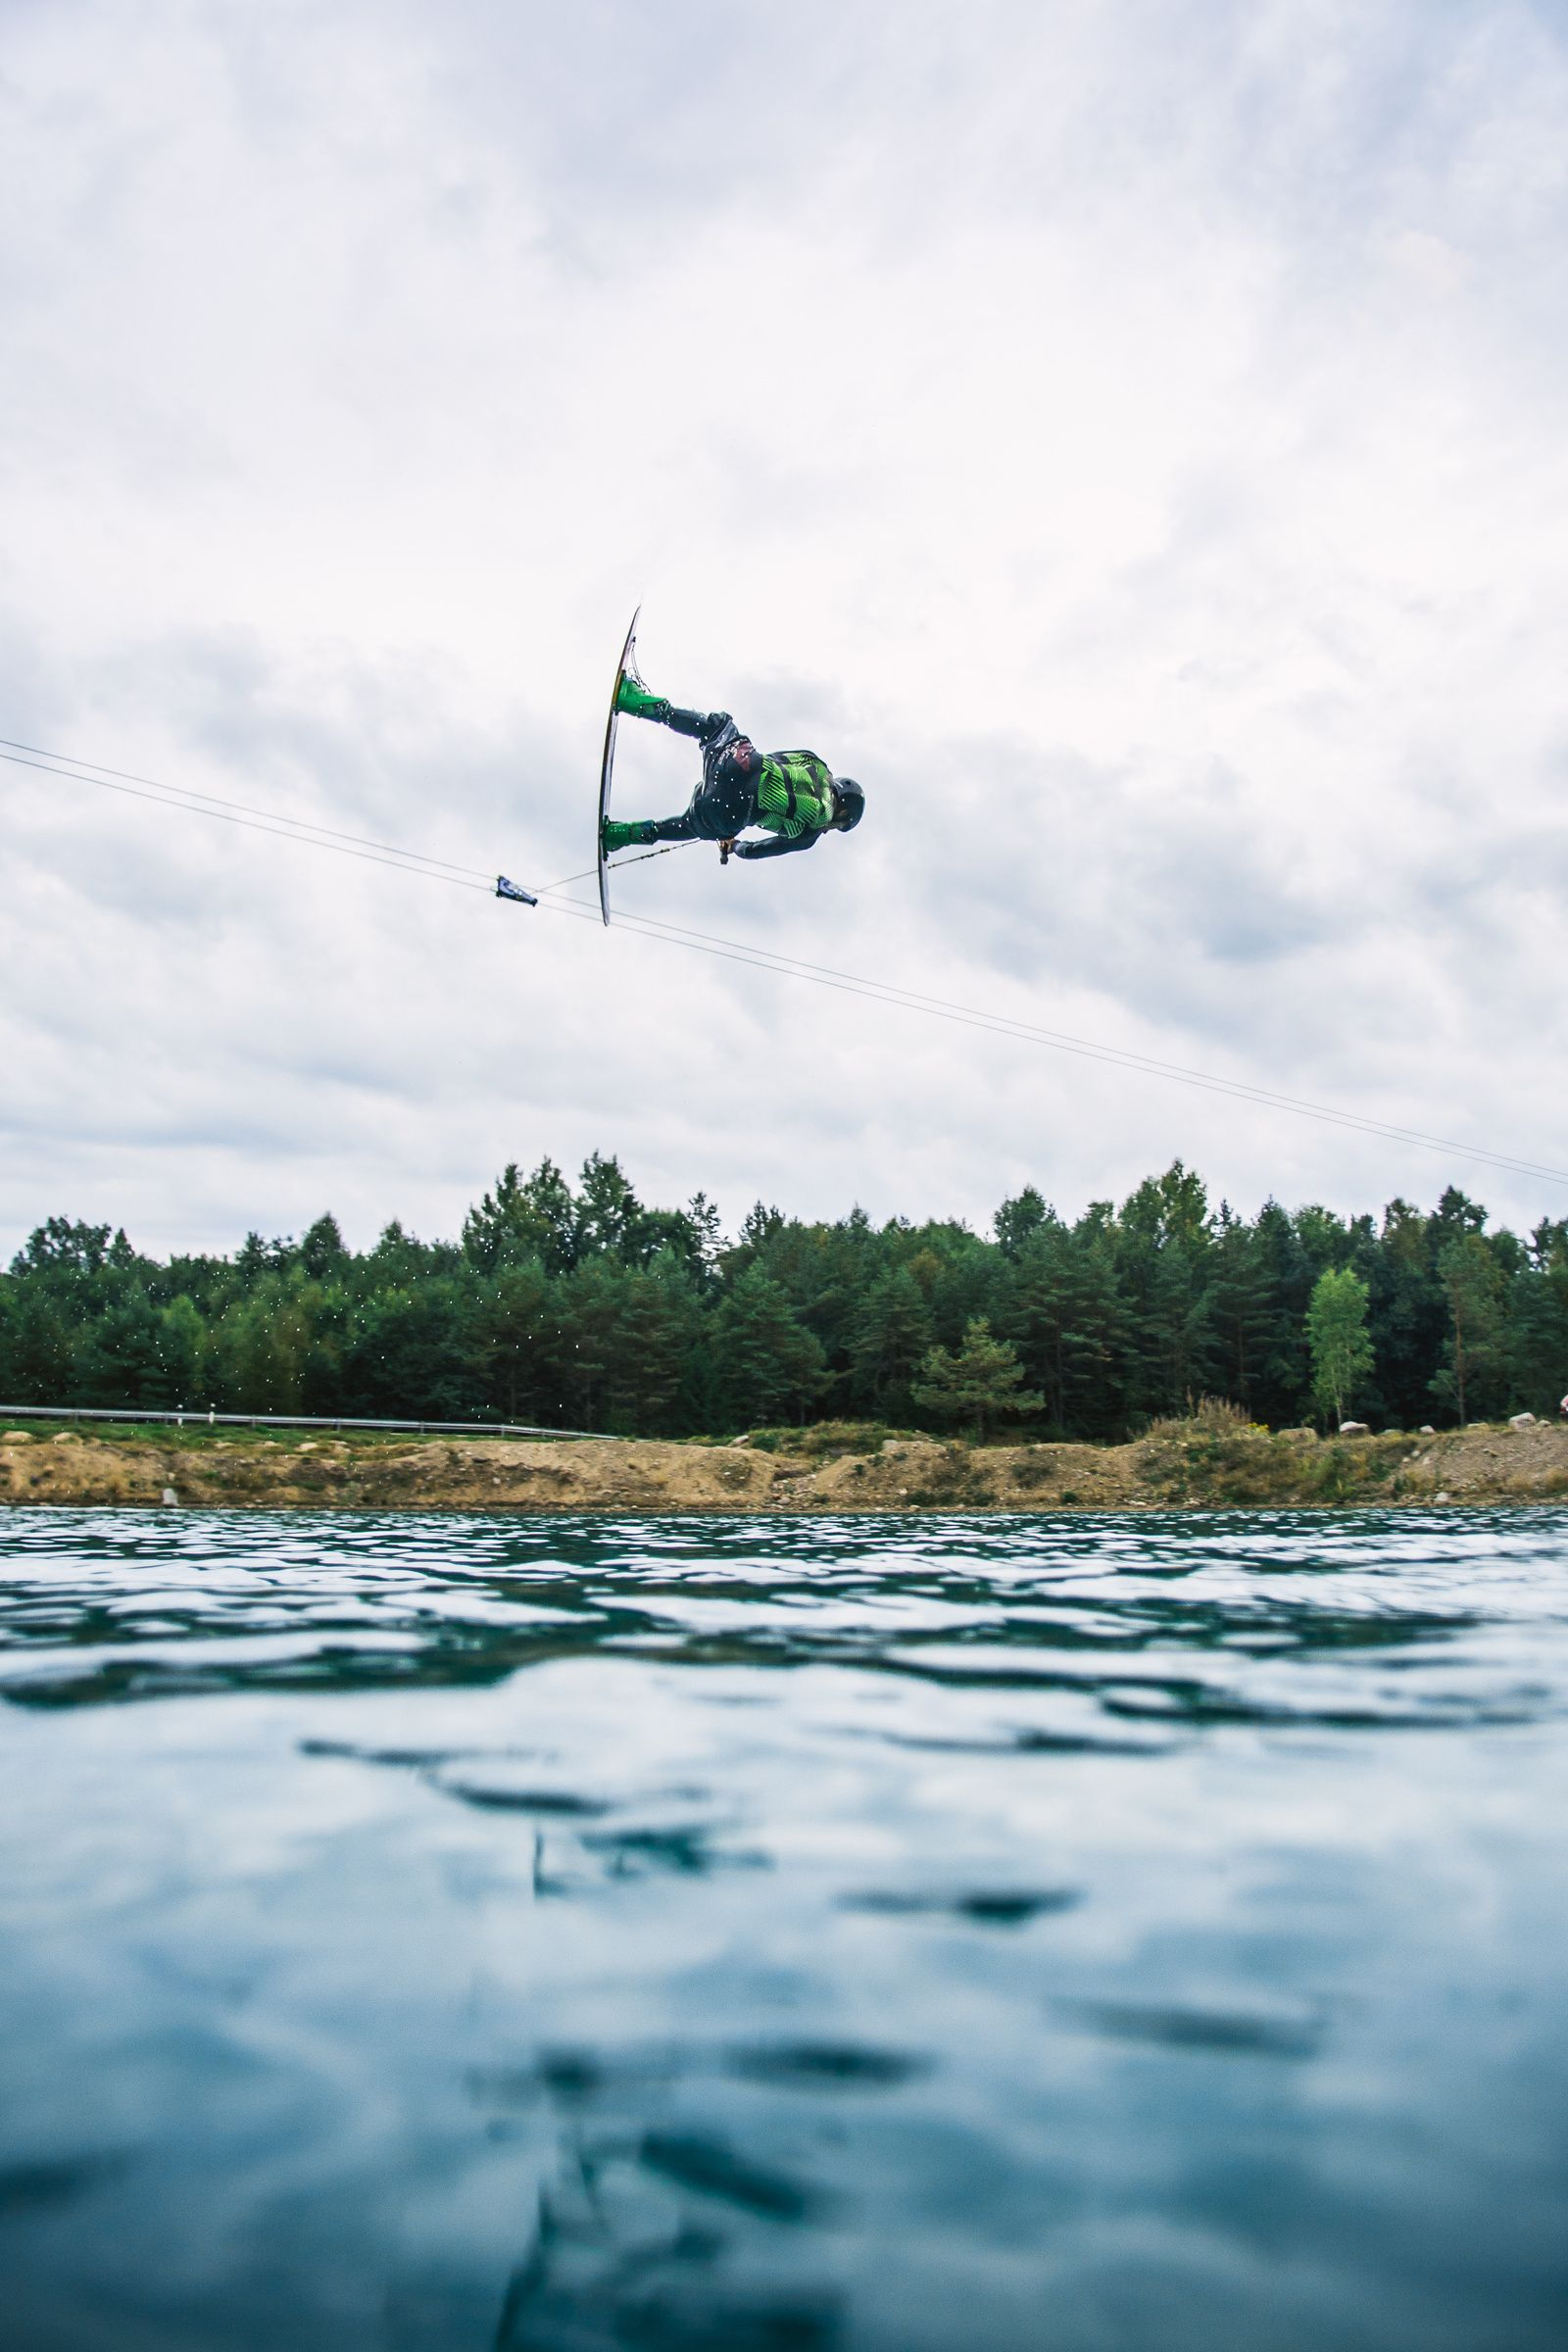 #wakeboard #cable park #sweden #liquid force Kalle Lundholm Photography - Cable Park 2.0 | sept 2013